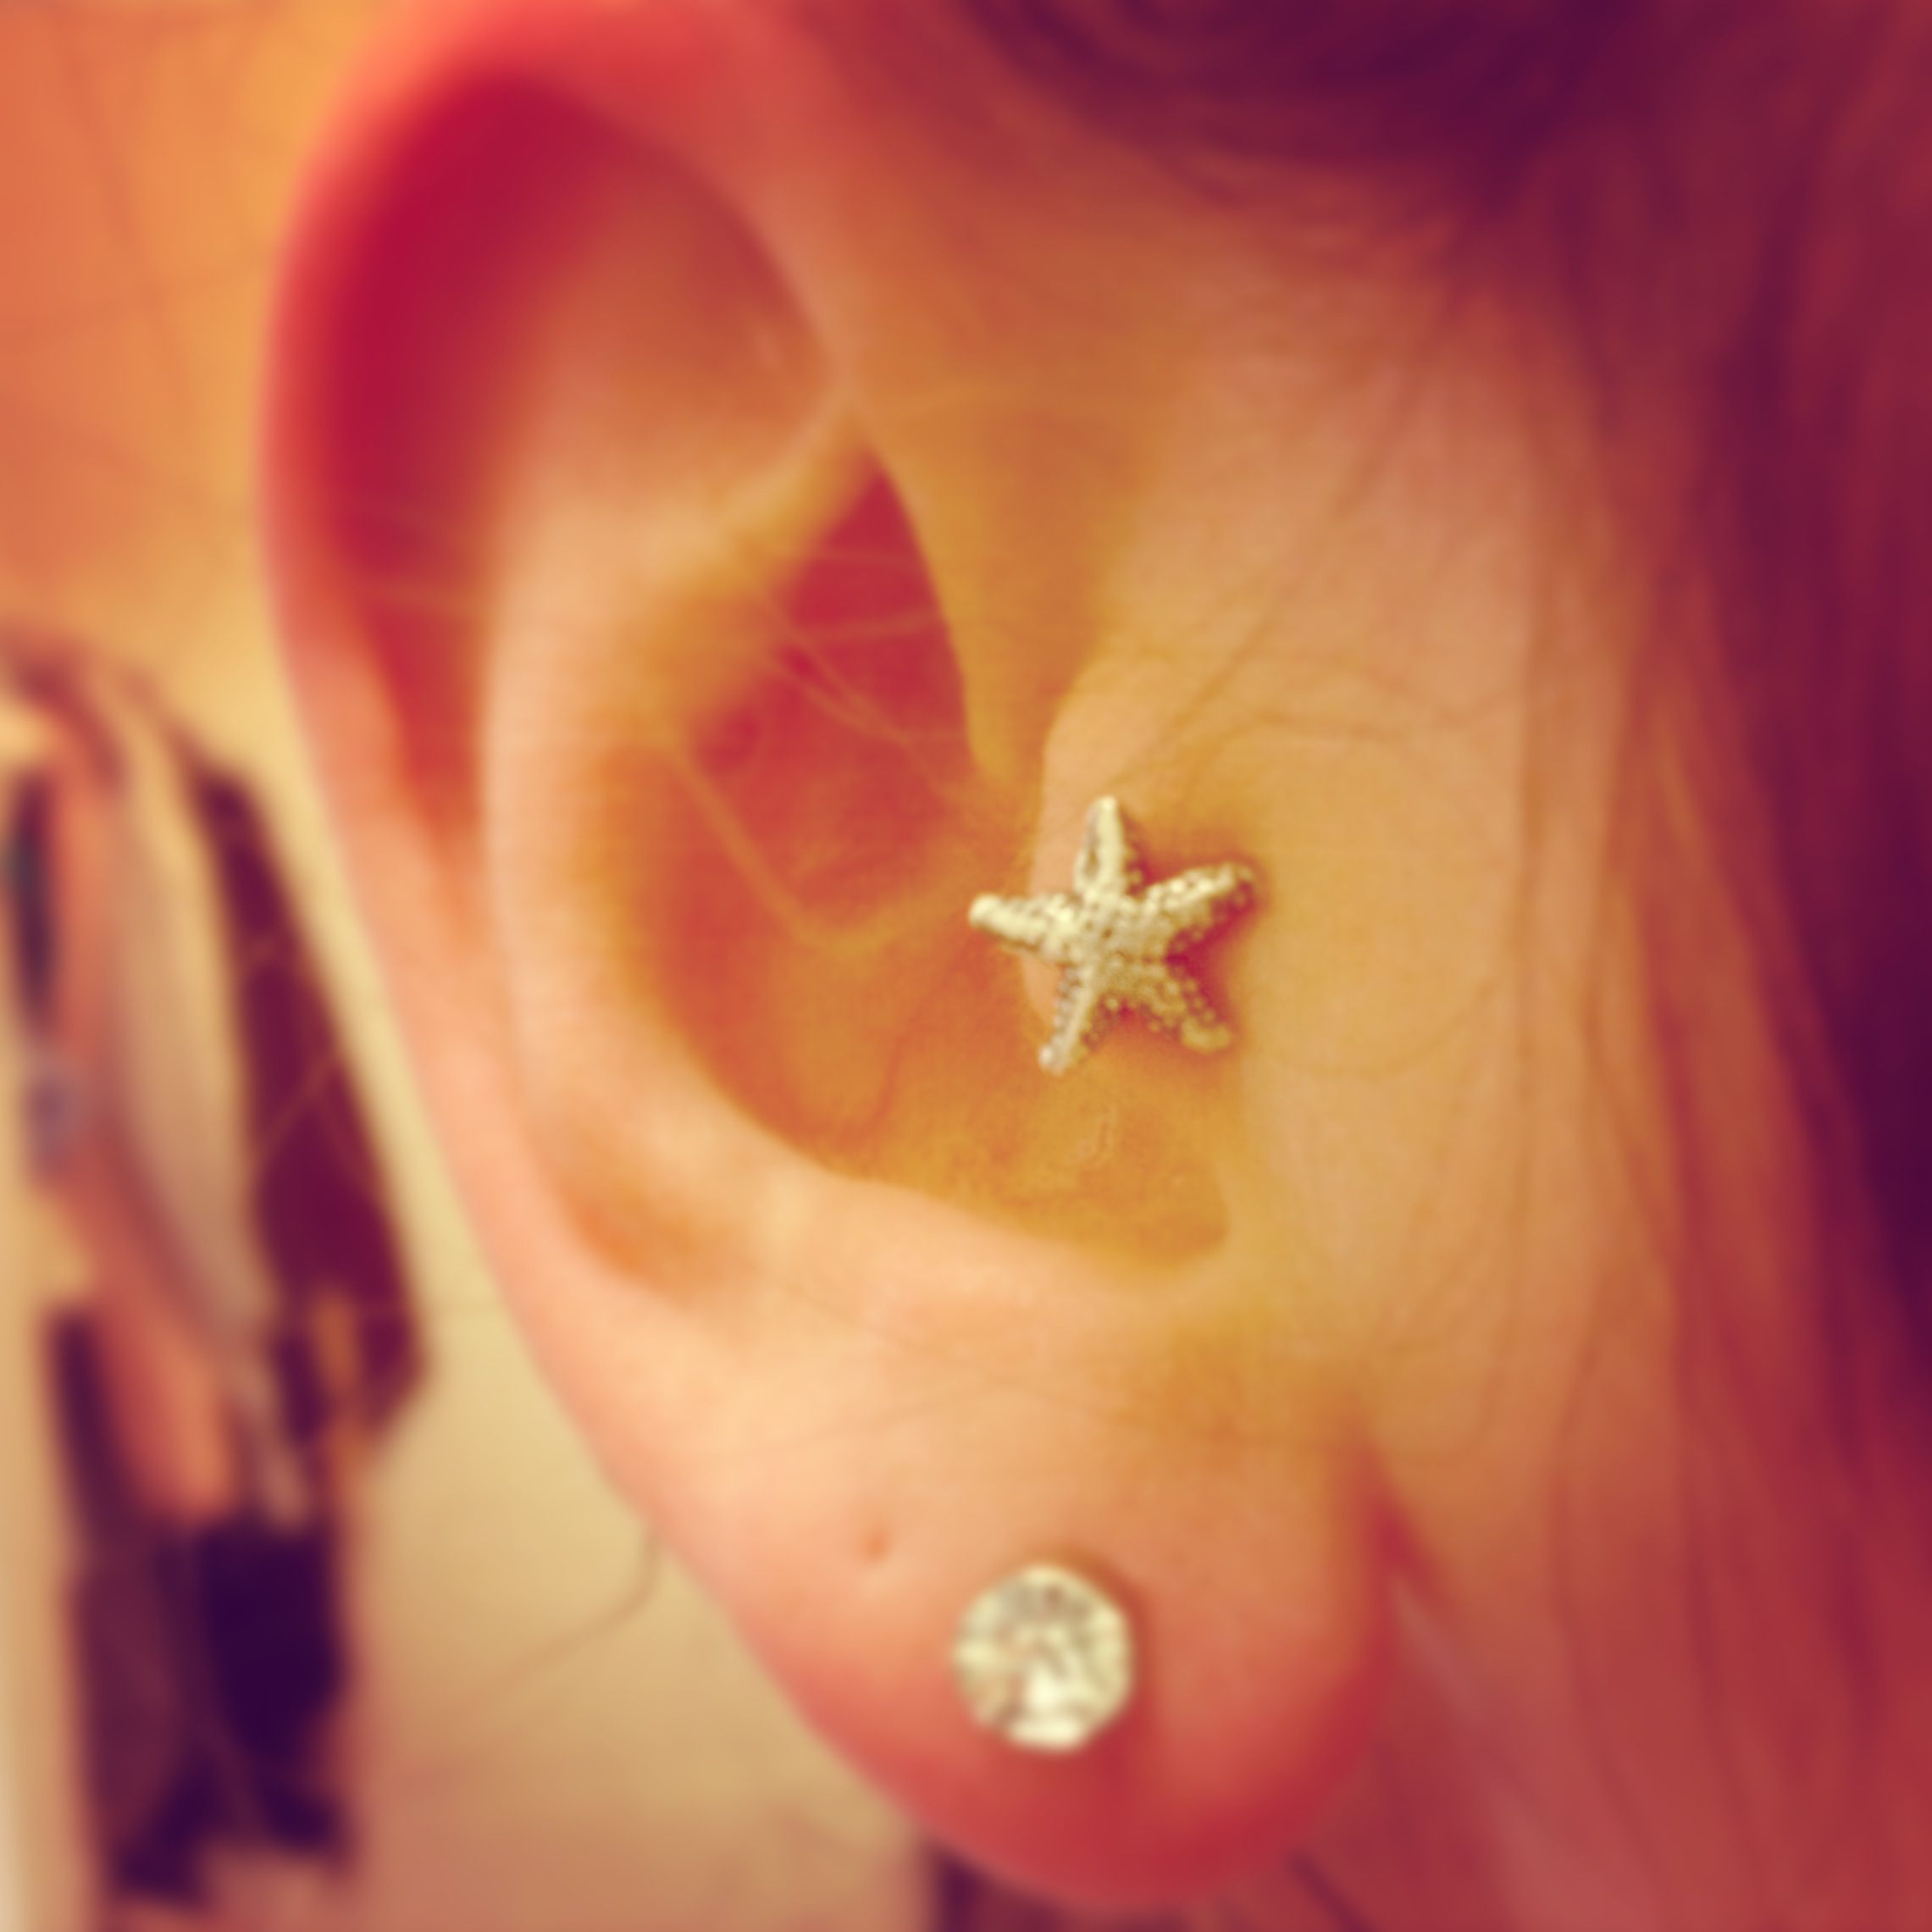 3mm nose piercing  Starfish tragus this is what I want  Tattoos and Piercings